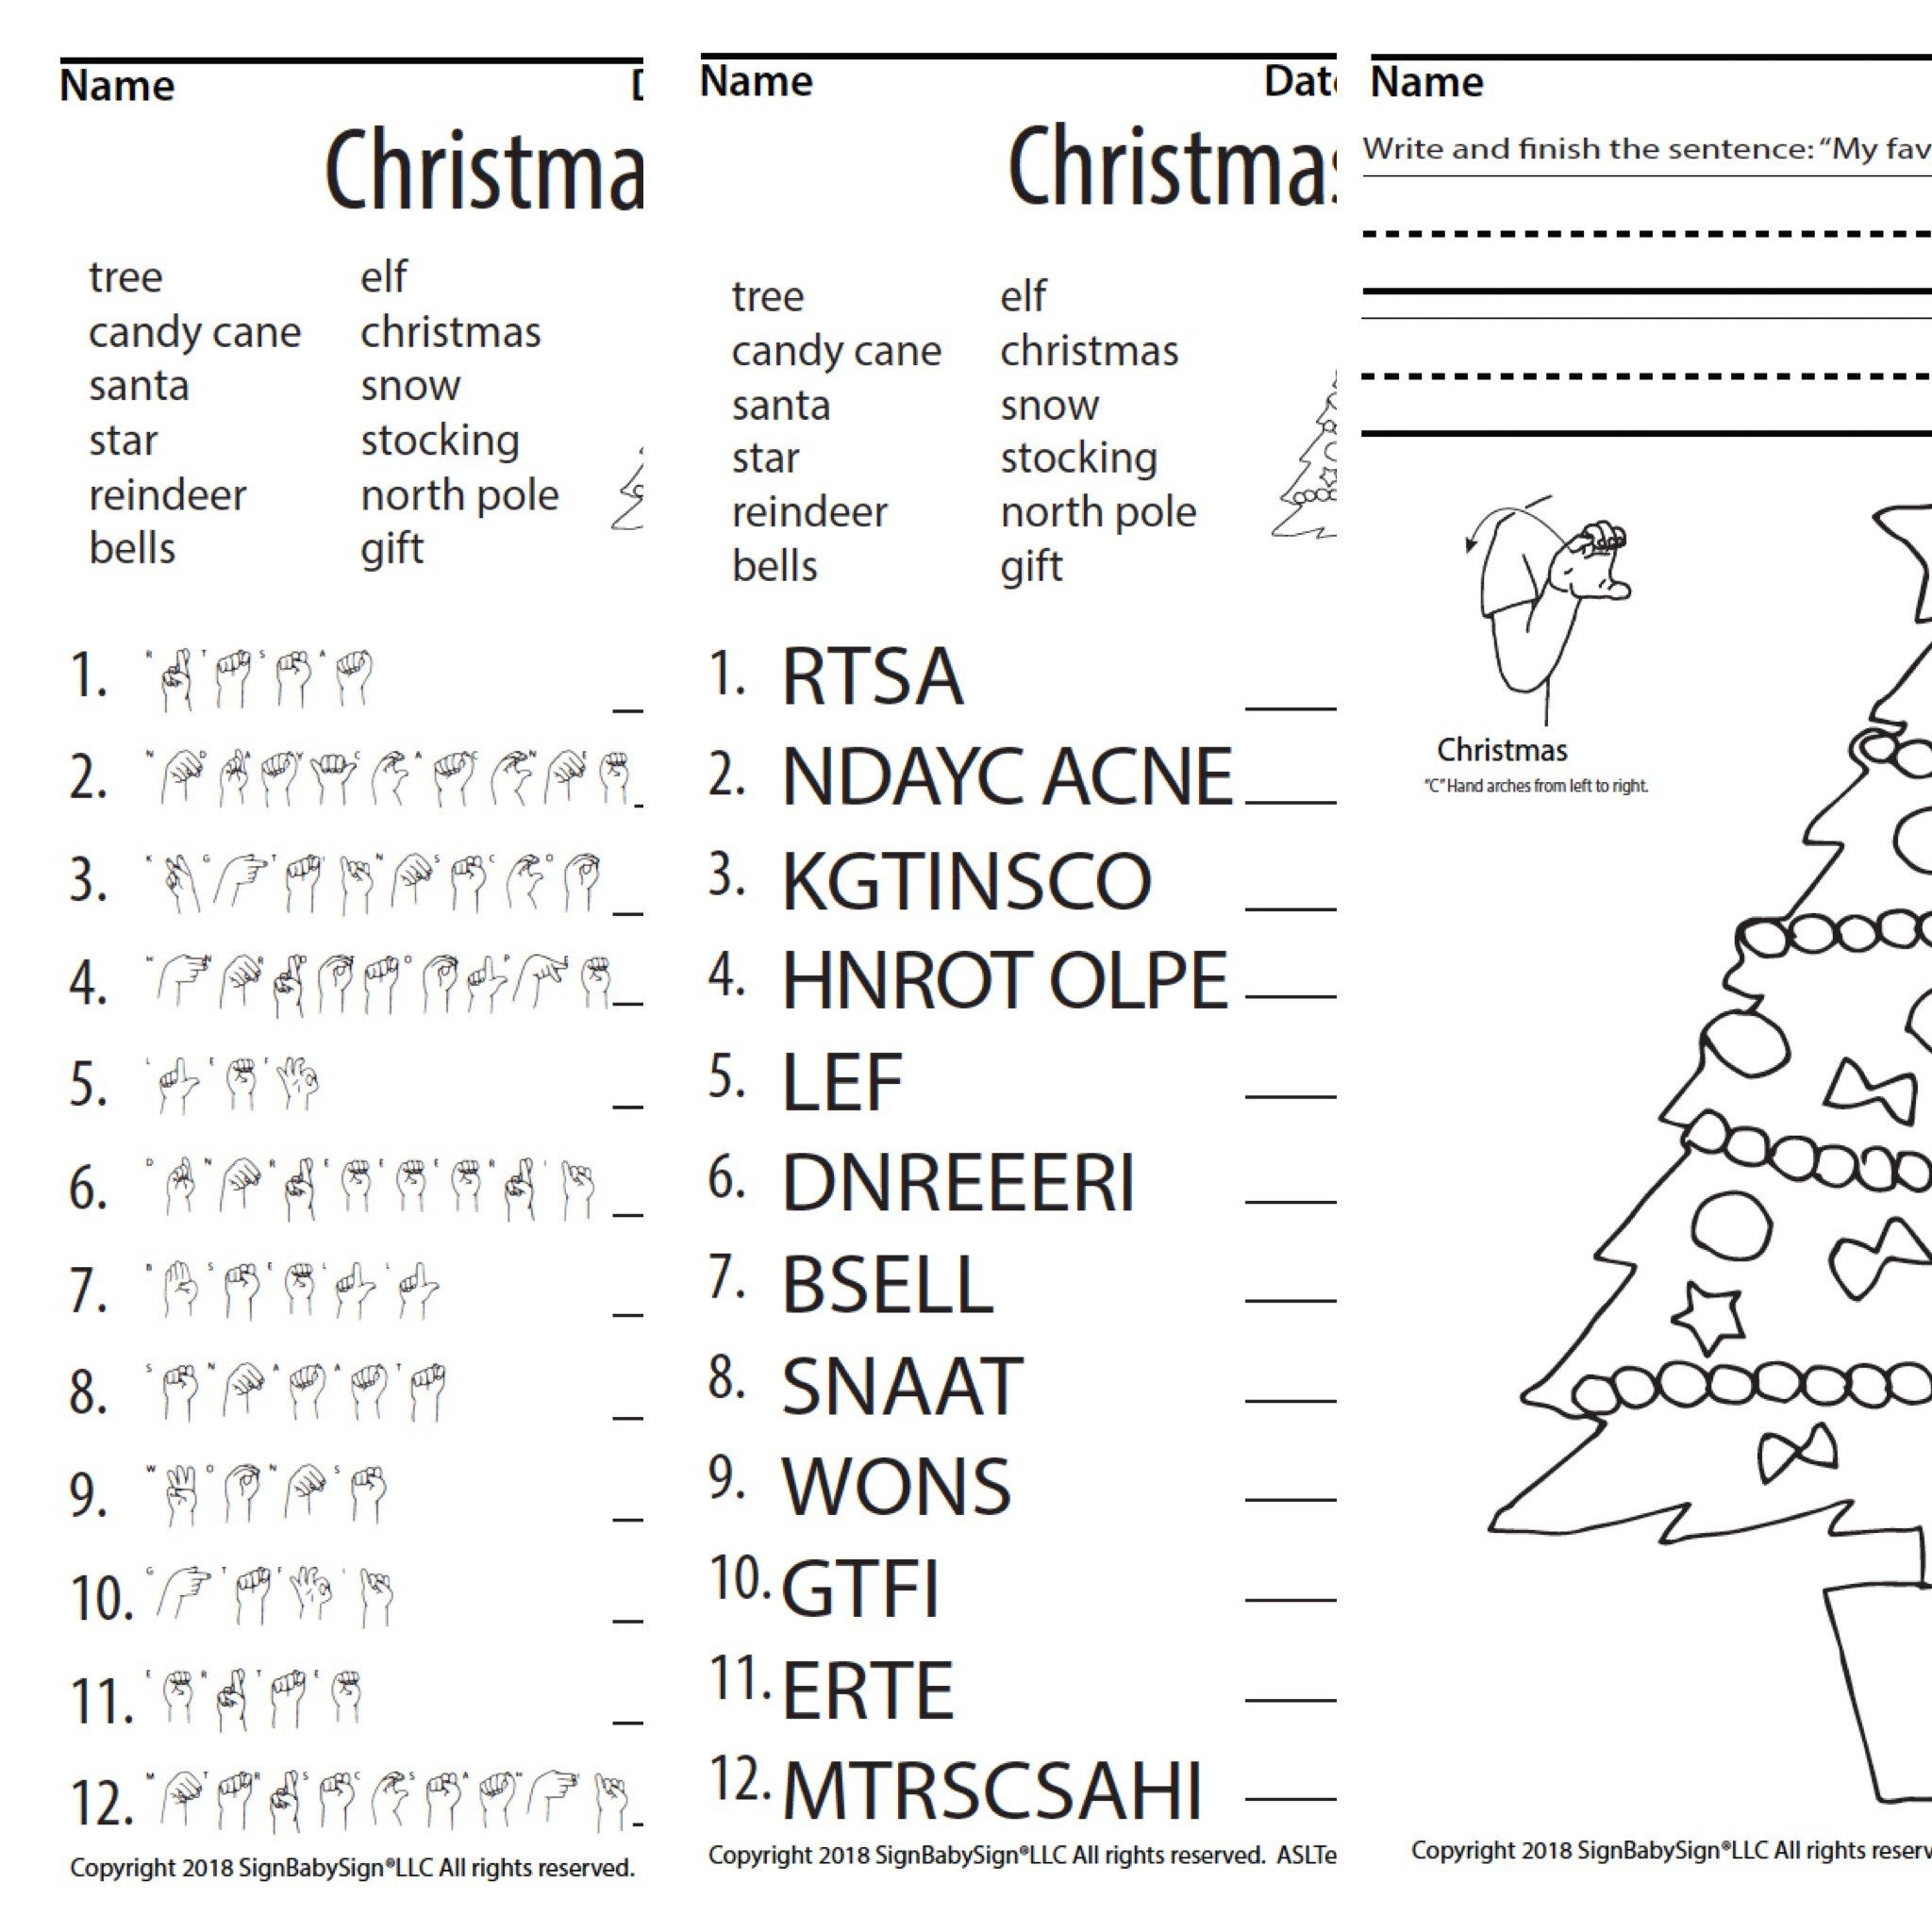 Scrambled Sentences Worksheets 3rd Grade Christmas Tree Scramble